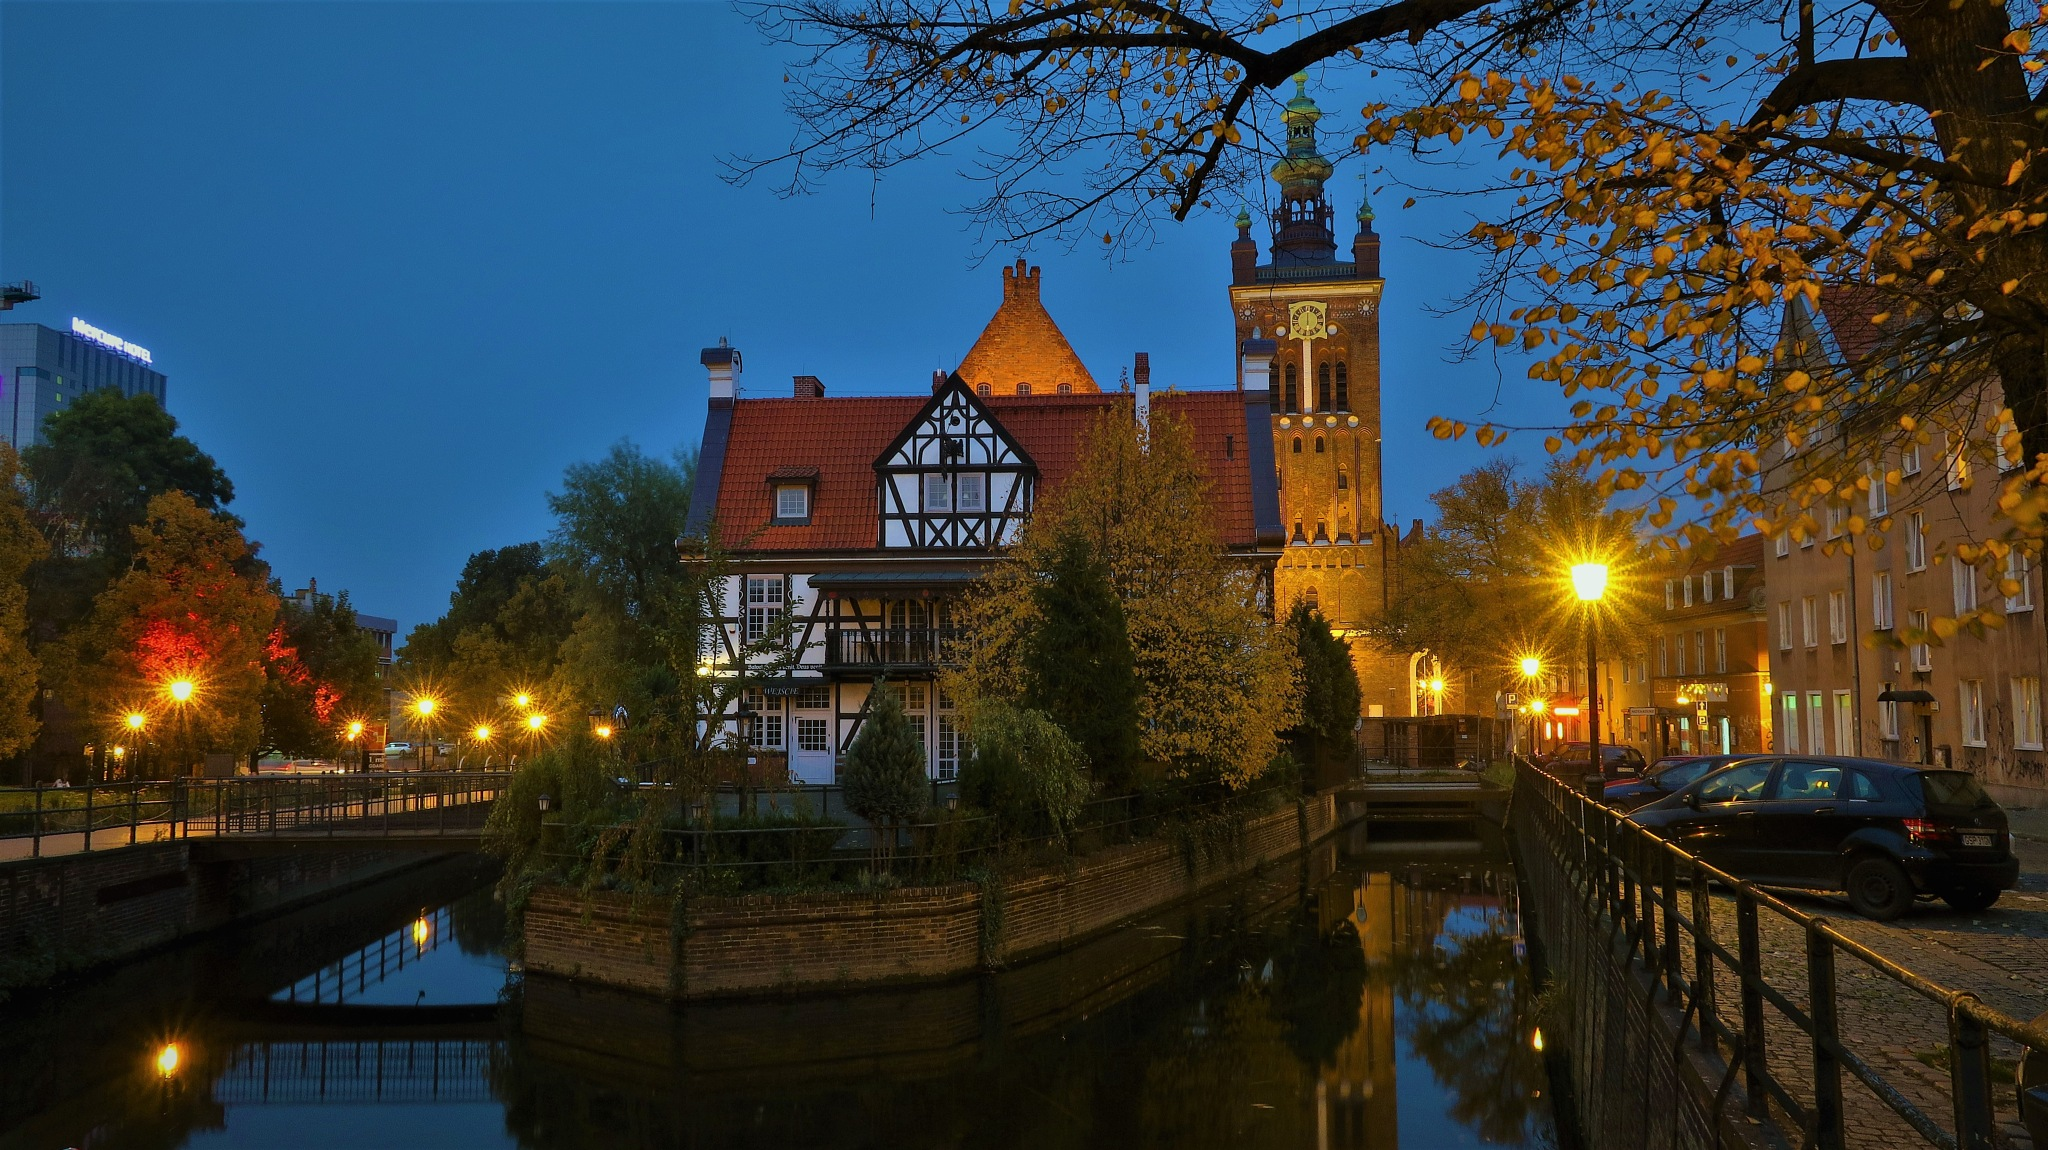 The Great Mill (Gdansk, Poland) by N.S. GDANSK